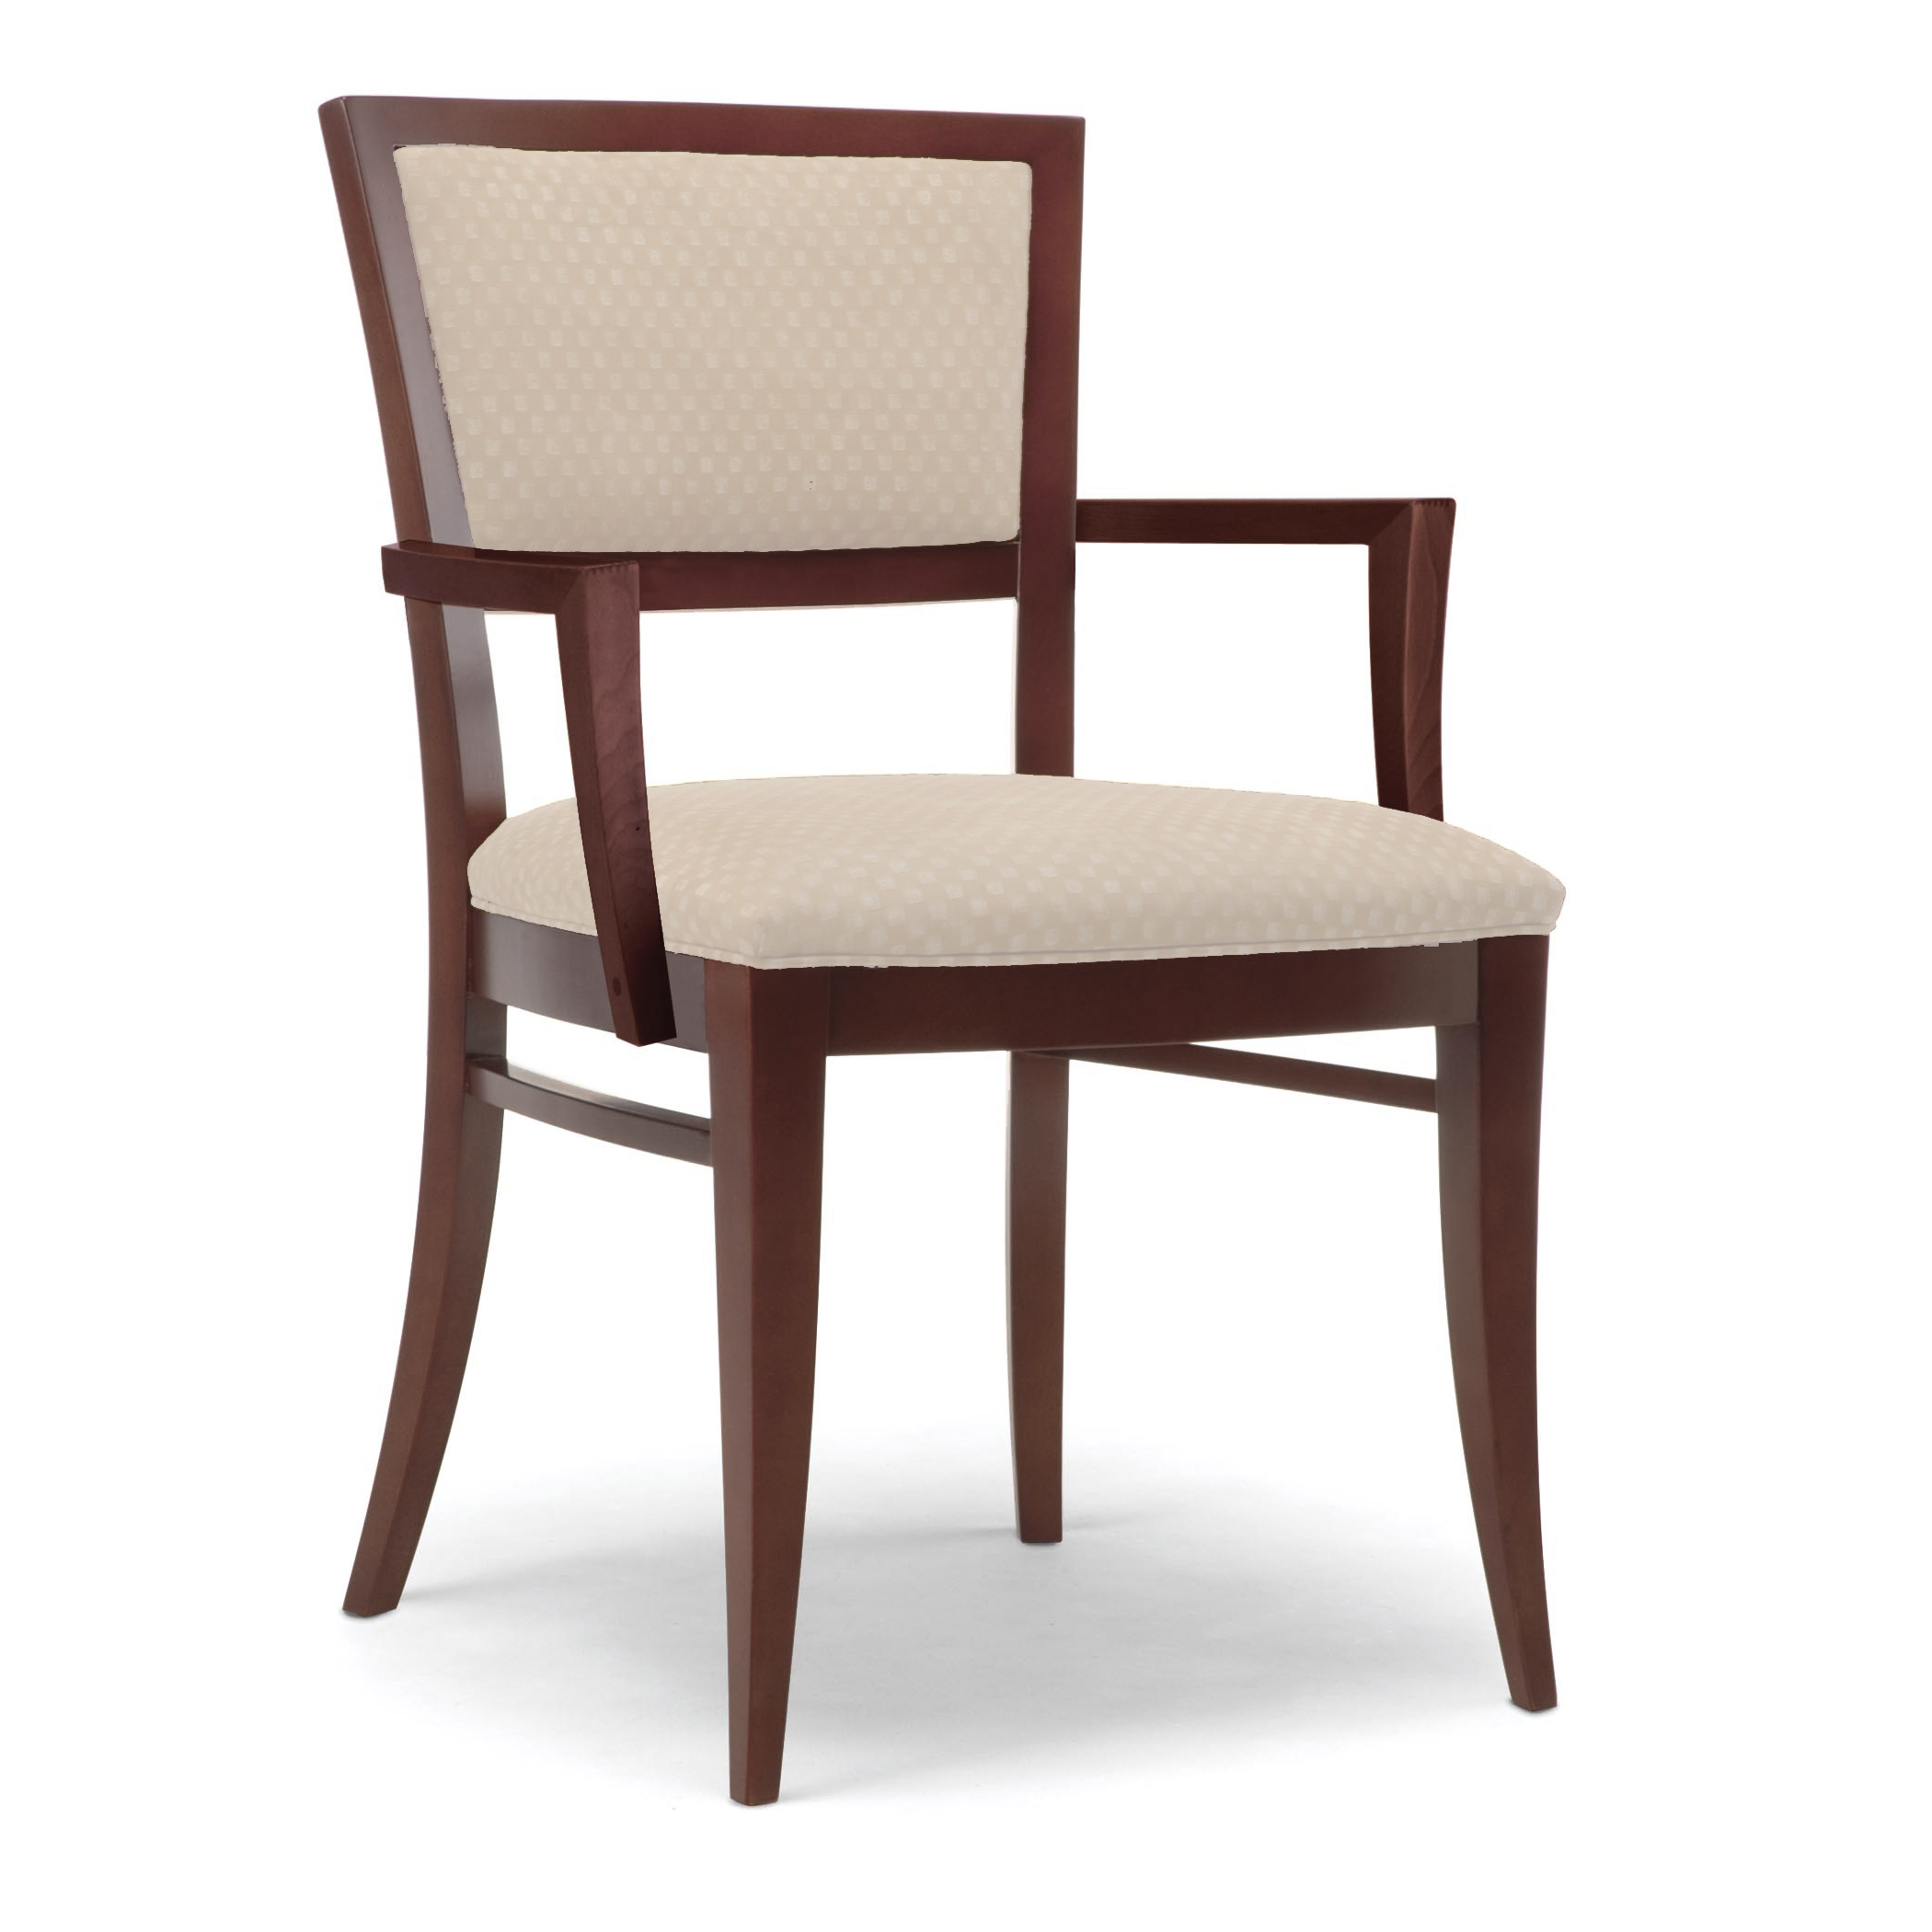 Arm Chairs 4920 1 Wood Arm Chair